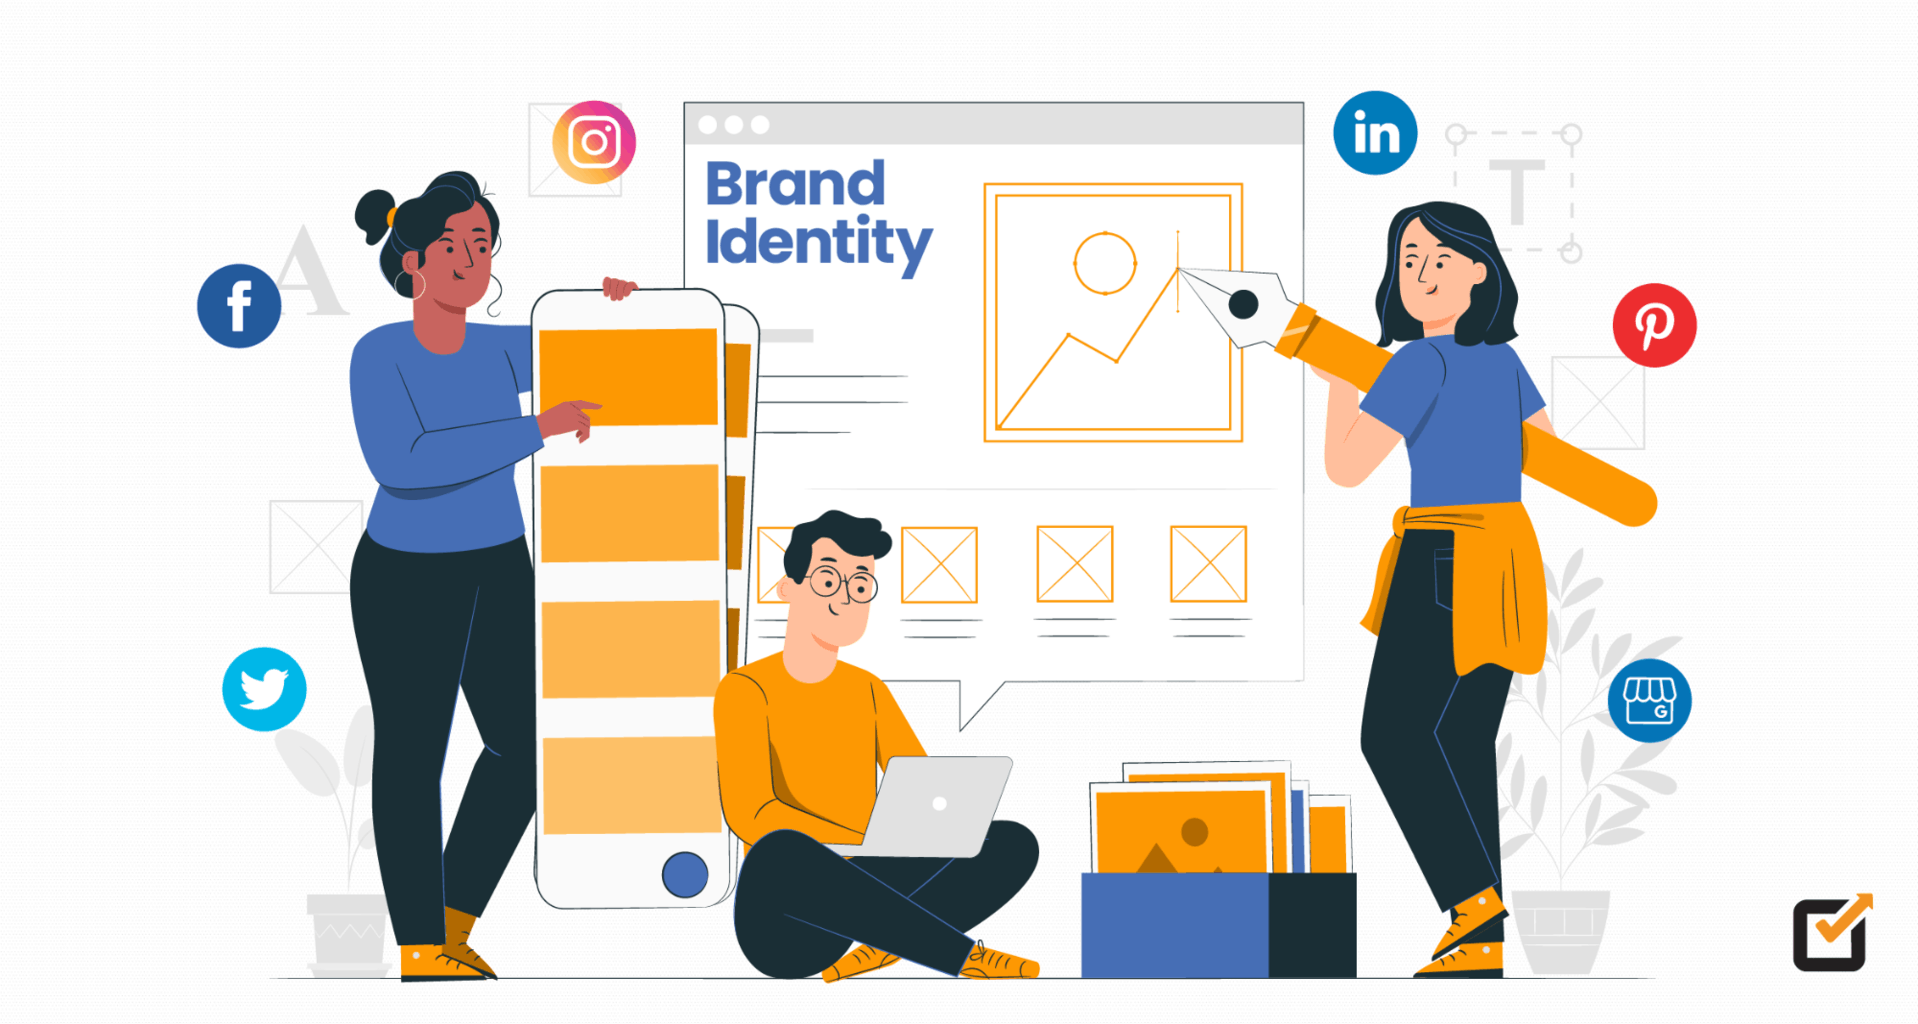 How to Build a Brand Identity across Social Media Channels